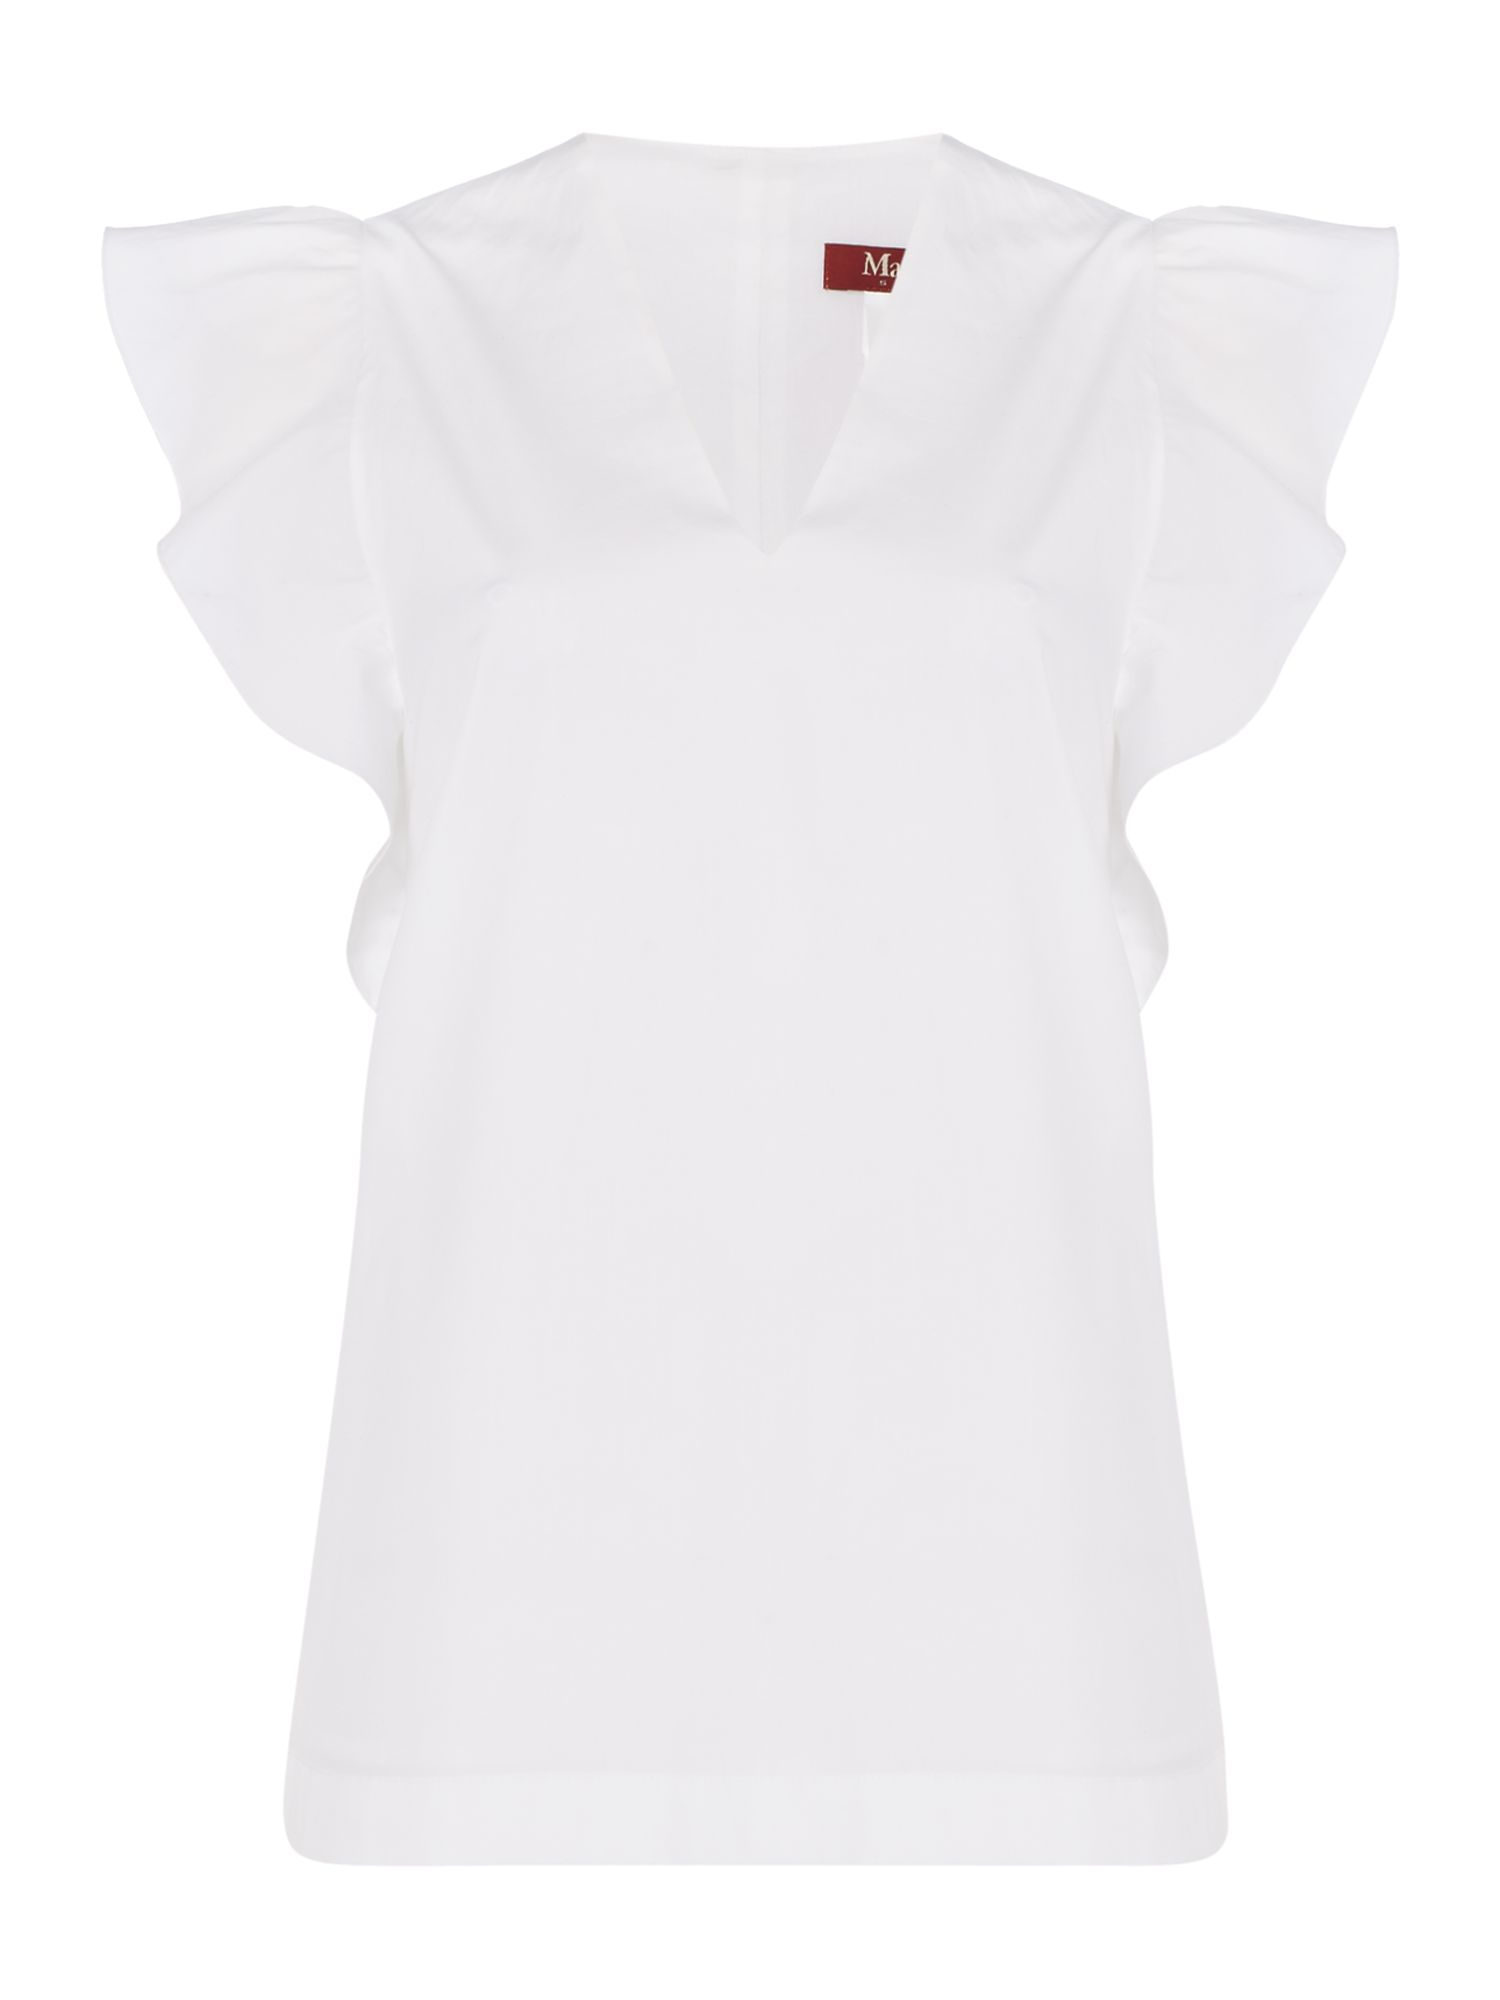 Max Mara Studio Libro ruffle sleeve v neck cotton blouse, White